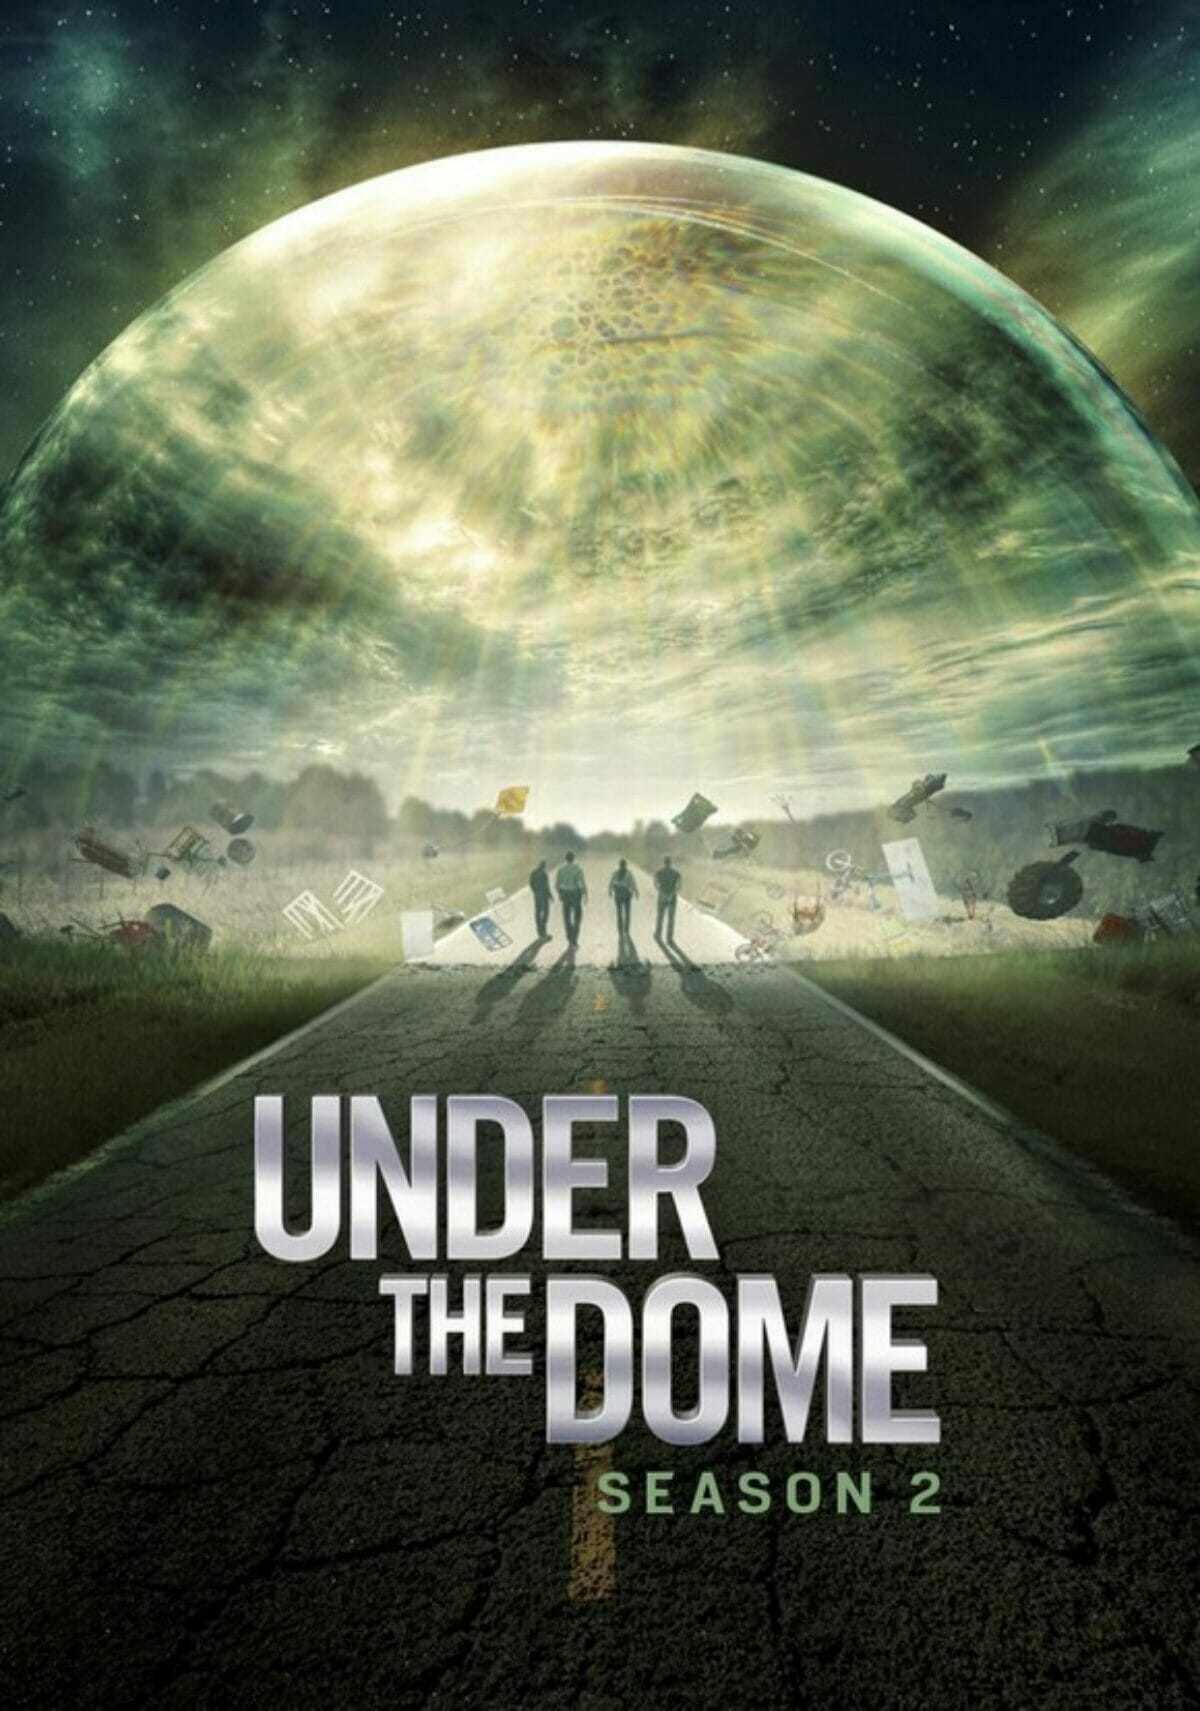 under-the-dome-poster-season-2